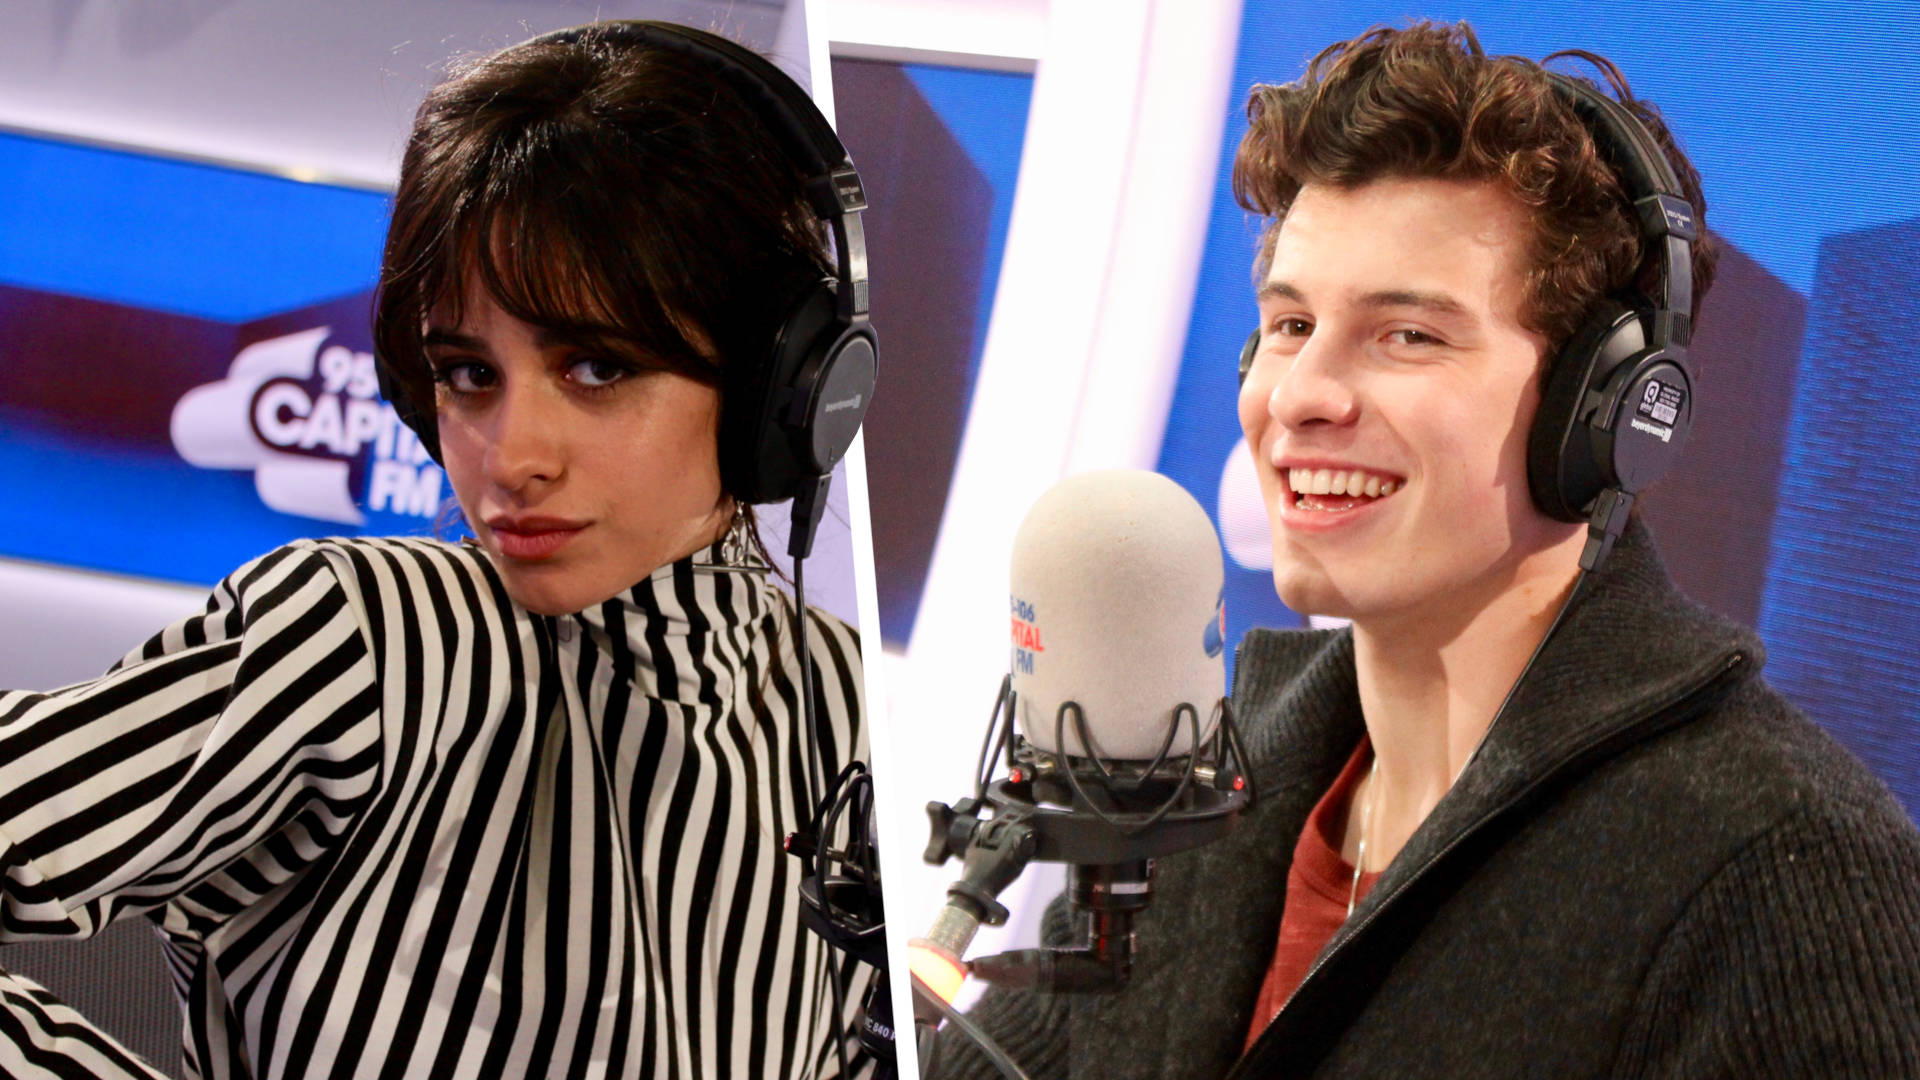 WATCH: Our Old Video Proves Camila Cabello Only Had Eyes For Shawn Mendes